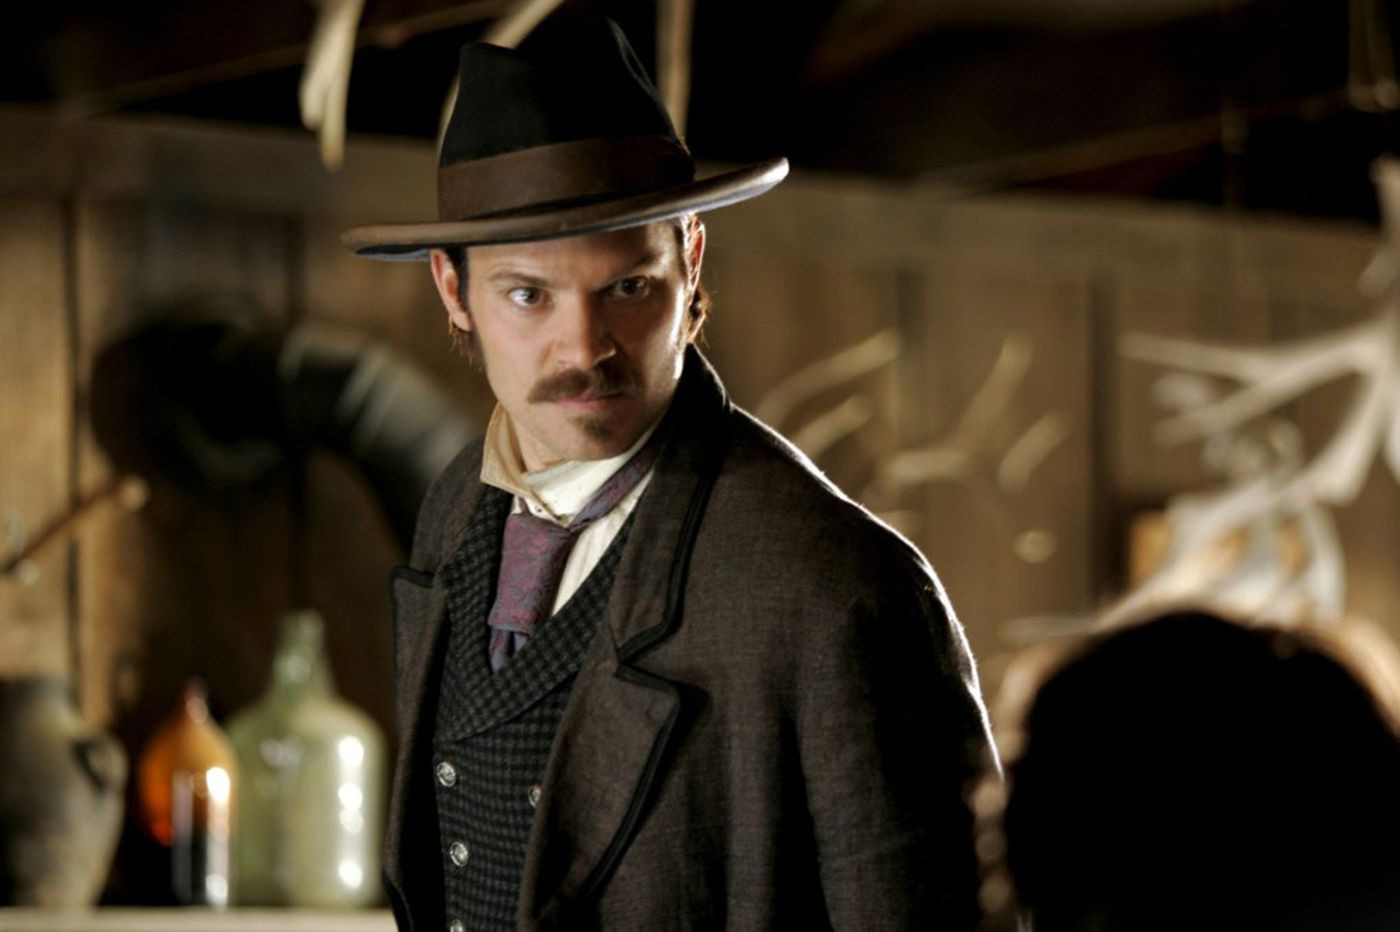 'Deadwood' lives: HBO says cameras nearly ready to roll